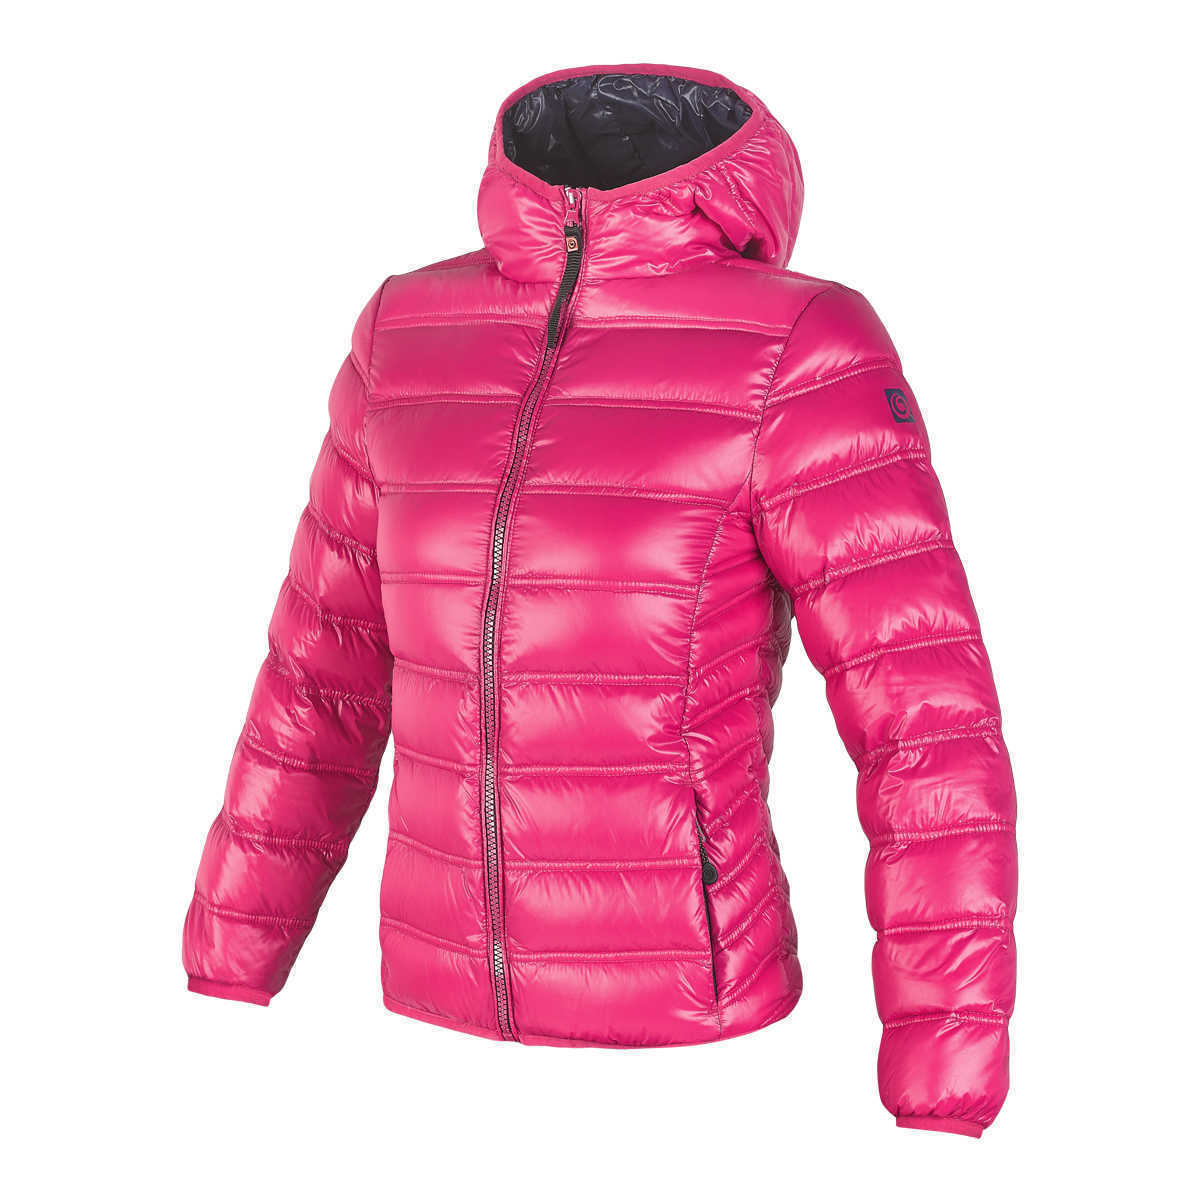 Smart Living Outdoor Flaumfeder Brf15ww03 Holiday Down Brekka Flaumfeder Outdoor Abzugshaube Damen 9b57a6